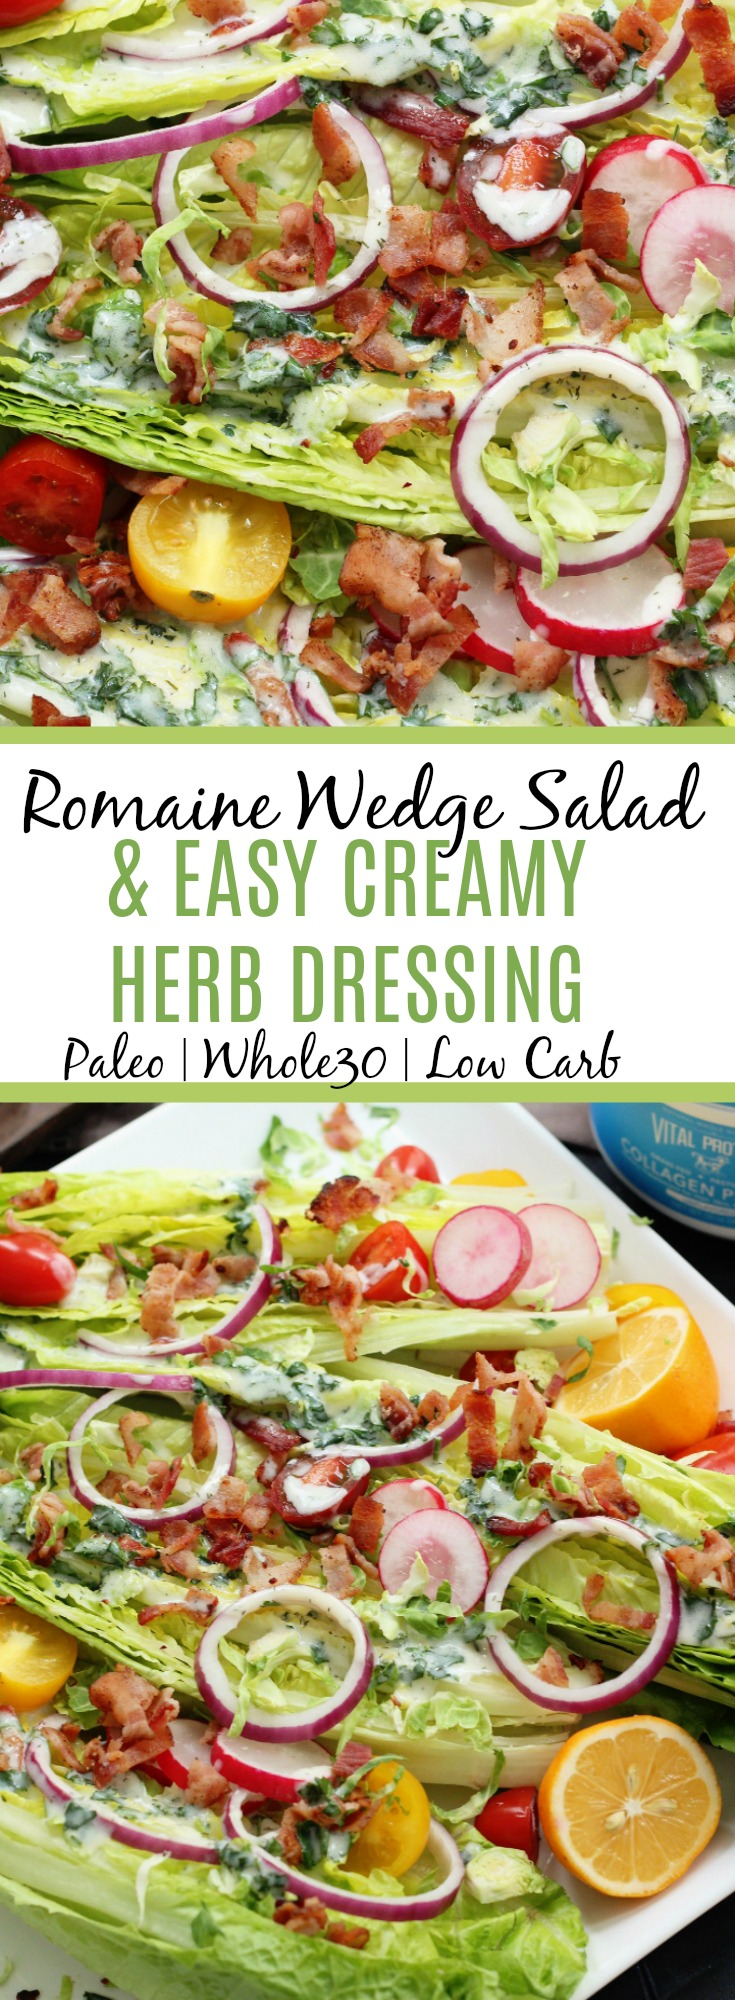 Easy low carb and paleo romaine wedge salad with a creamy herb Whole30 dressing! #paleodressing #paleowedgesalad #whole30saladdressing #lowcarb #whole30dressing